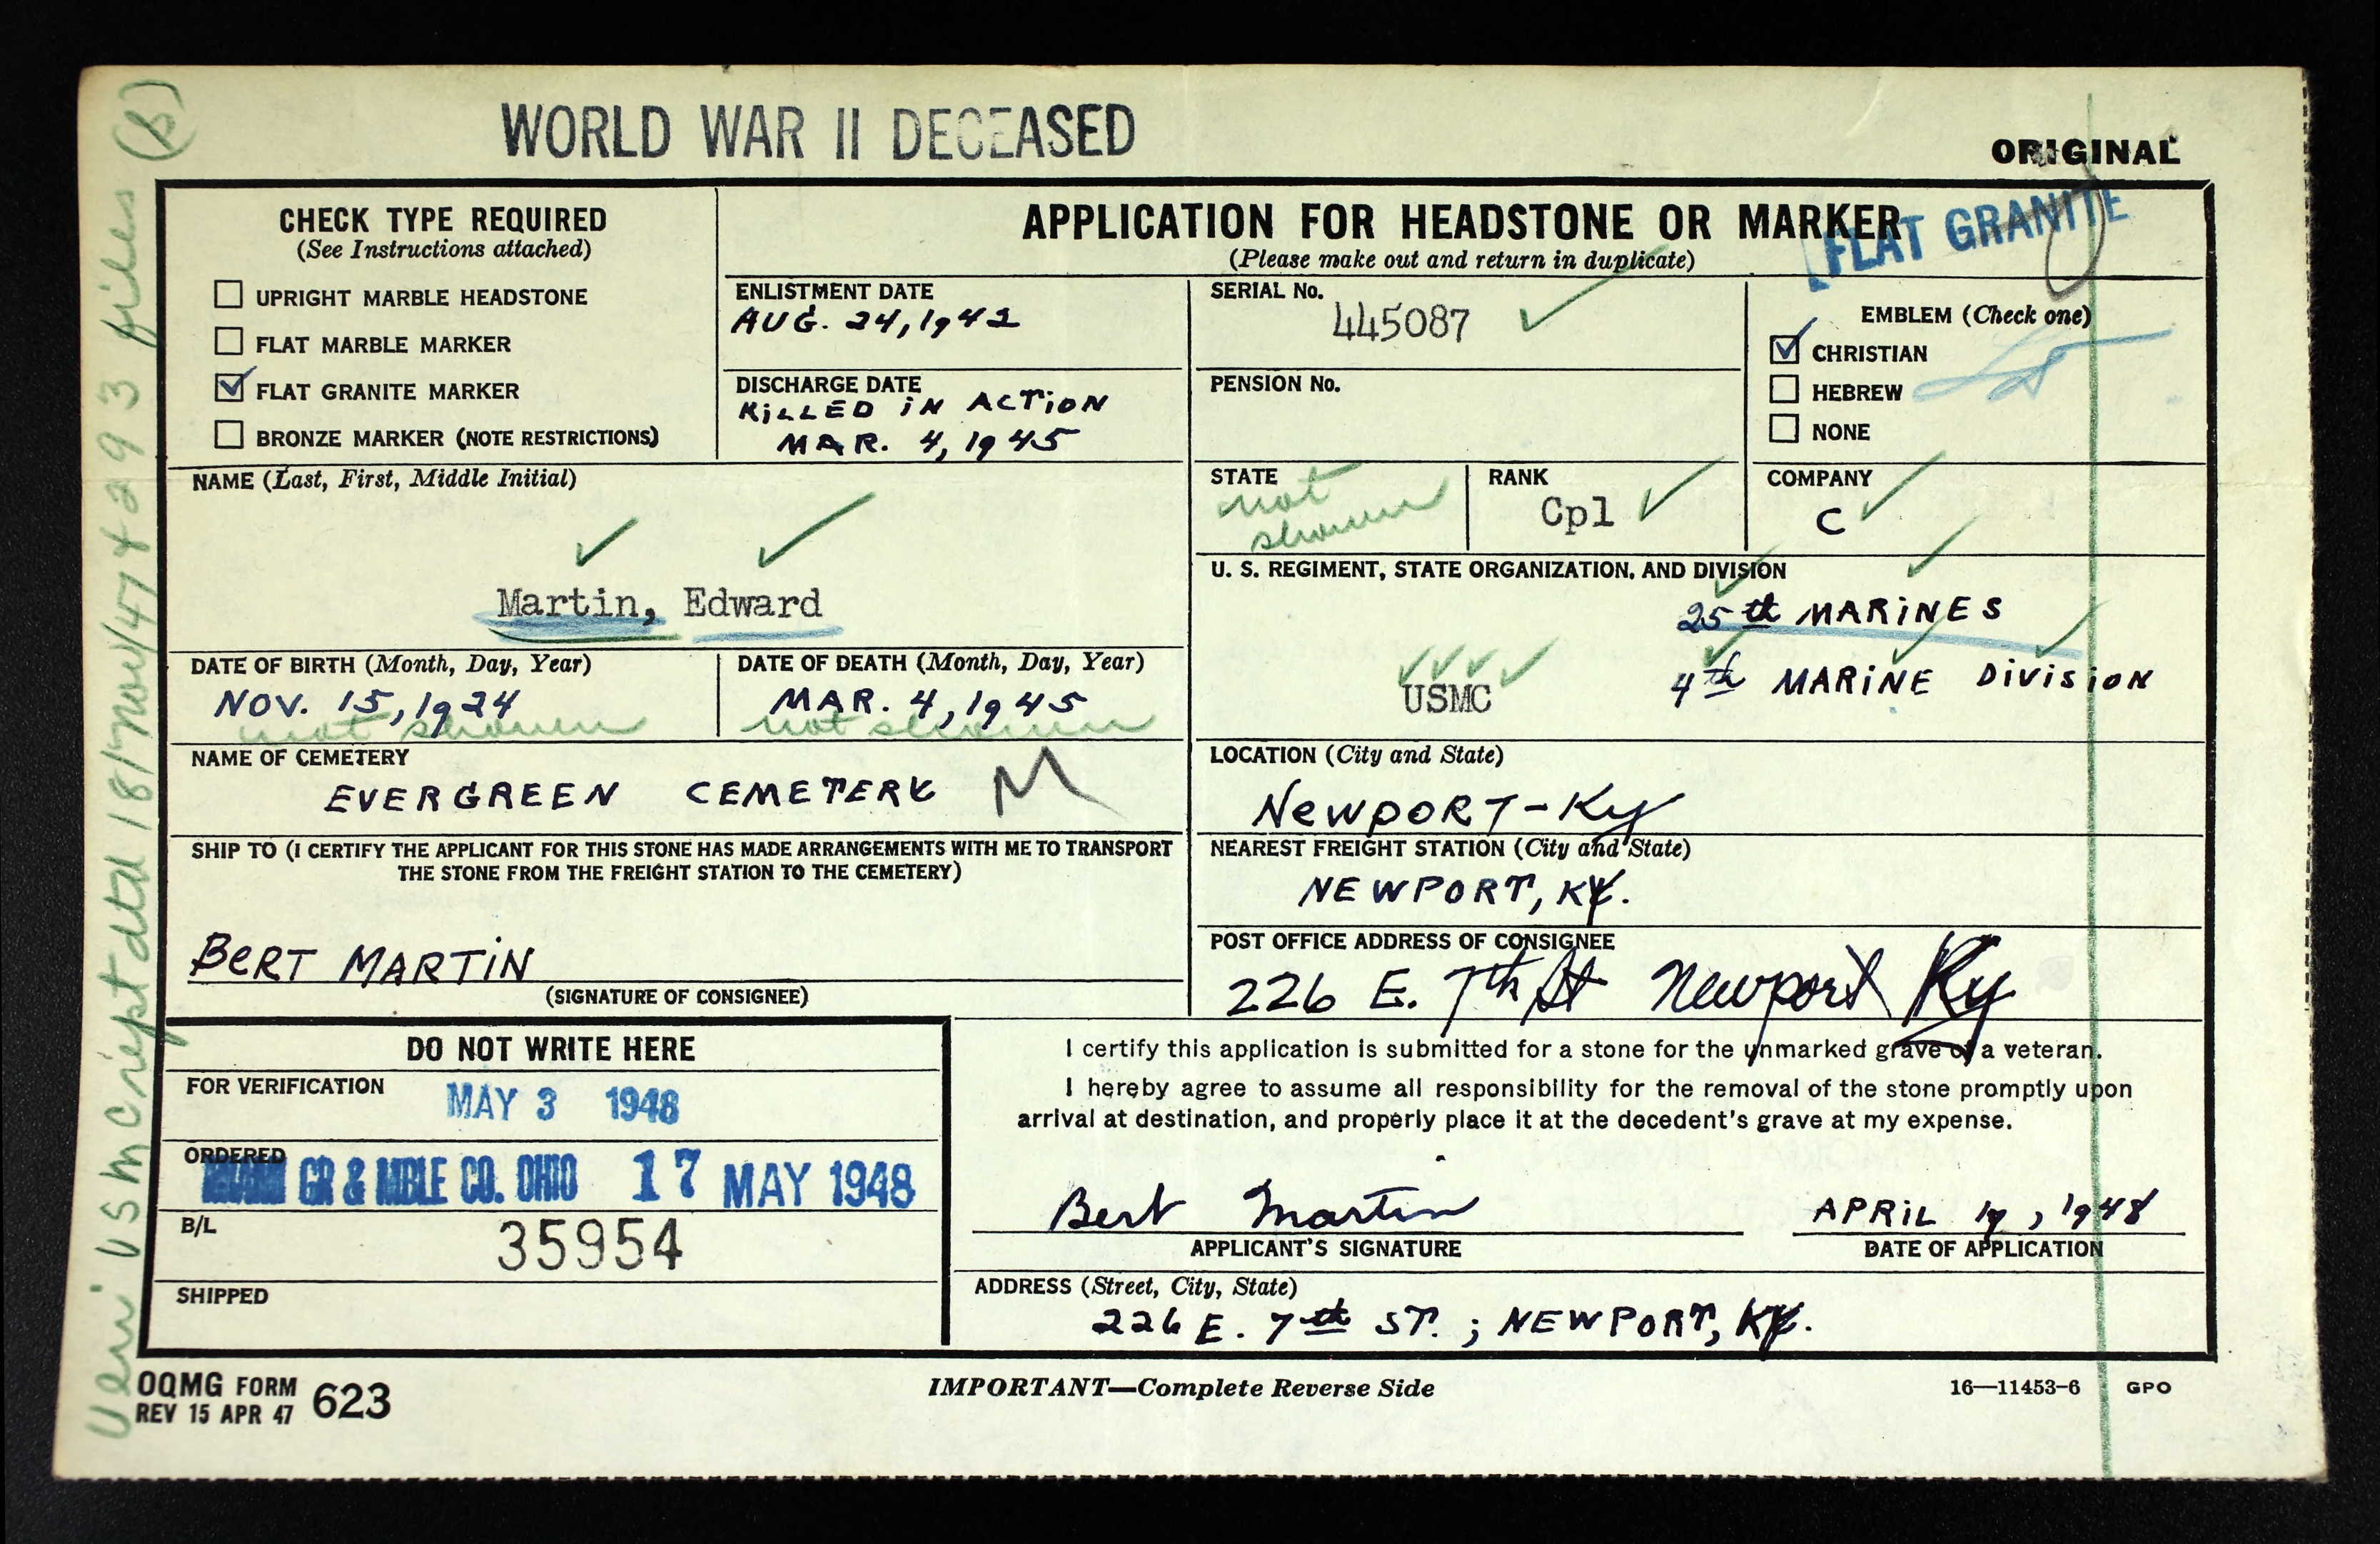 Edward Martin Application for Headstone or Marker